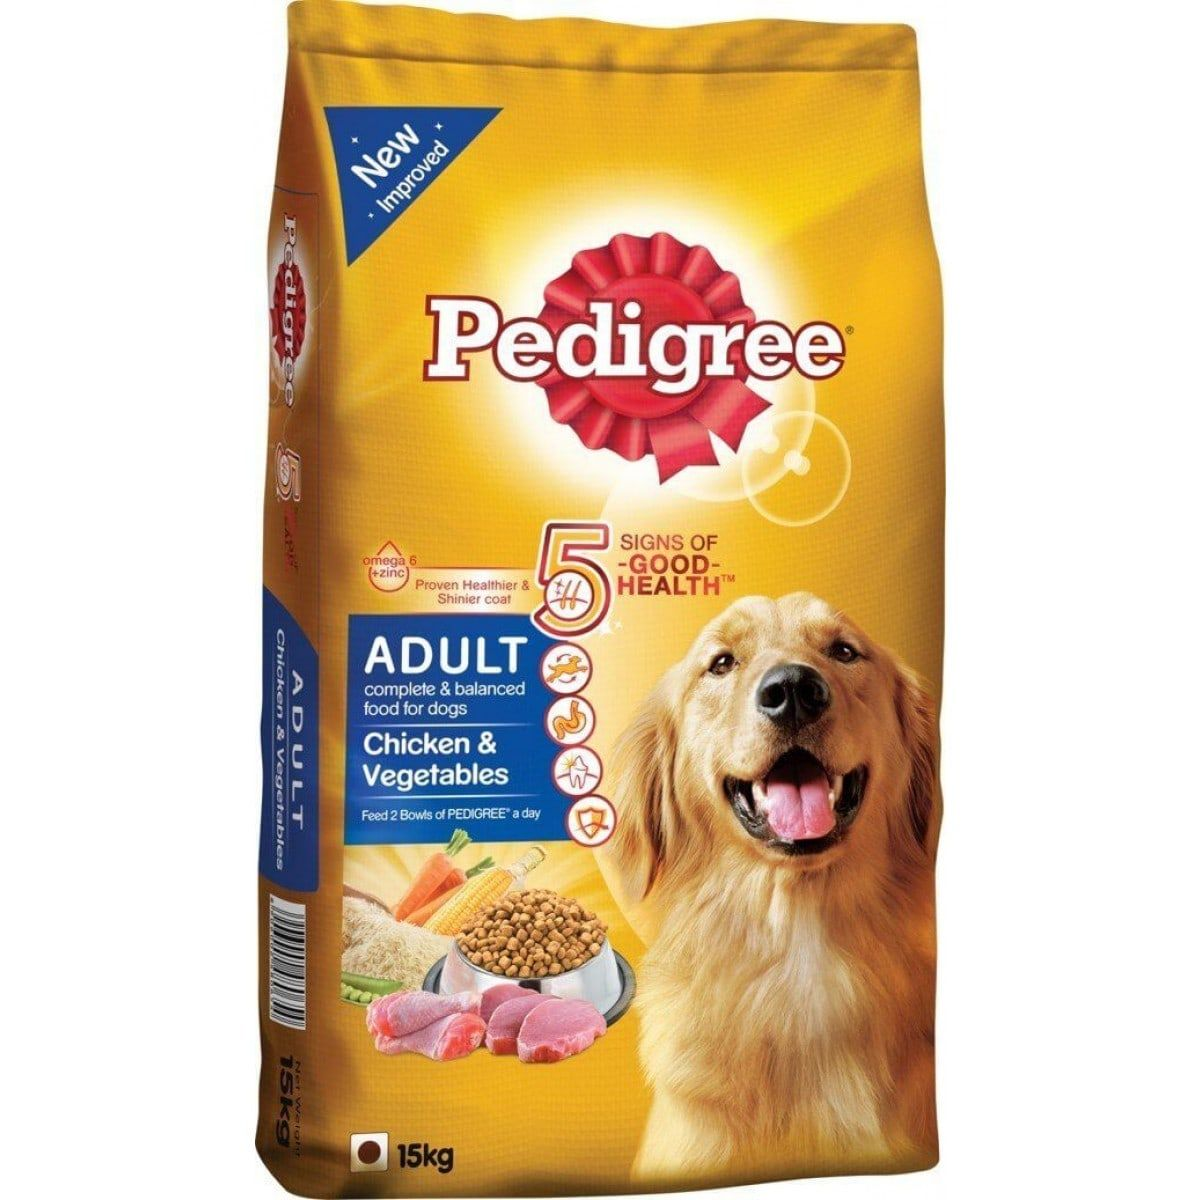 Pedigree Adult Chicken And Vegetable 15kg Is Best Dog Food For